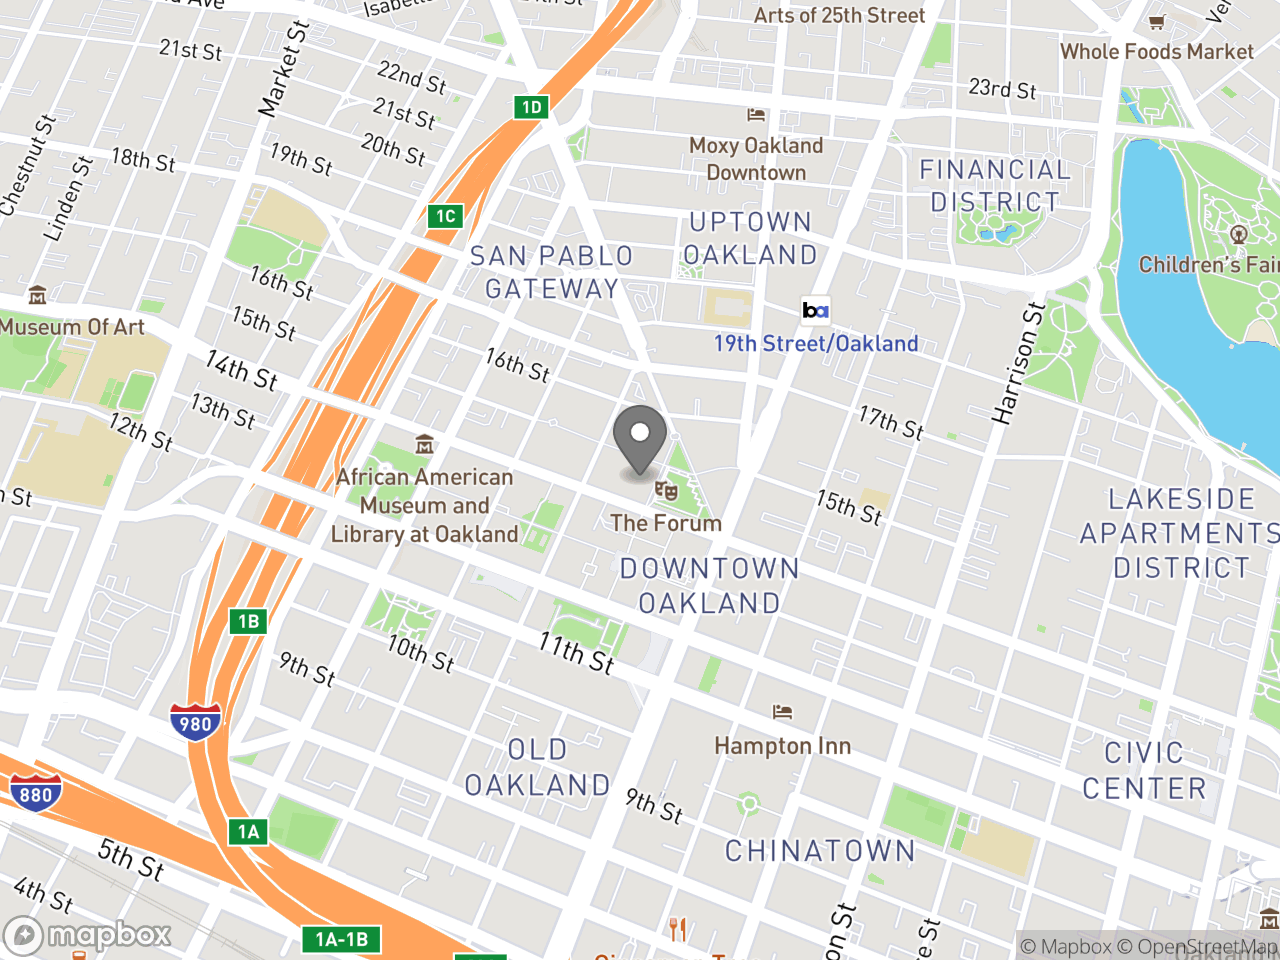 Map location for City Attorney, located at 1 Frank H. Ogawa Plaza in Oakland , CA 94612